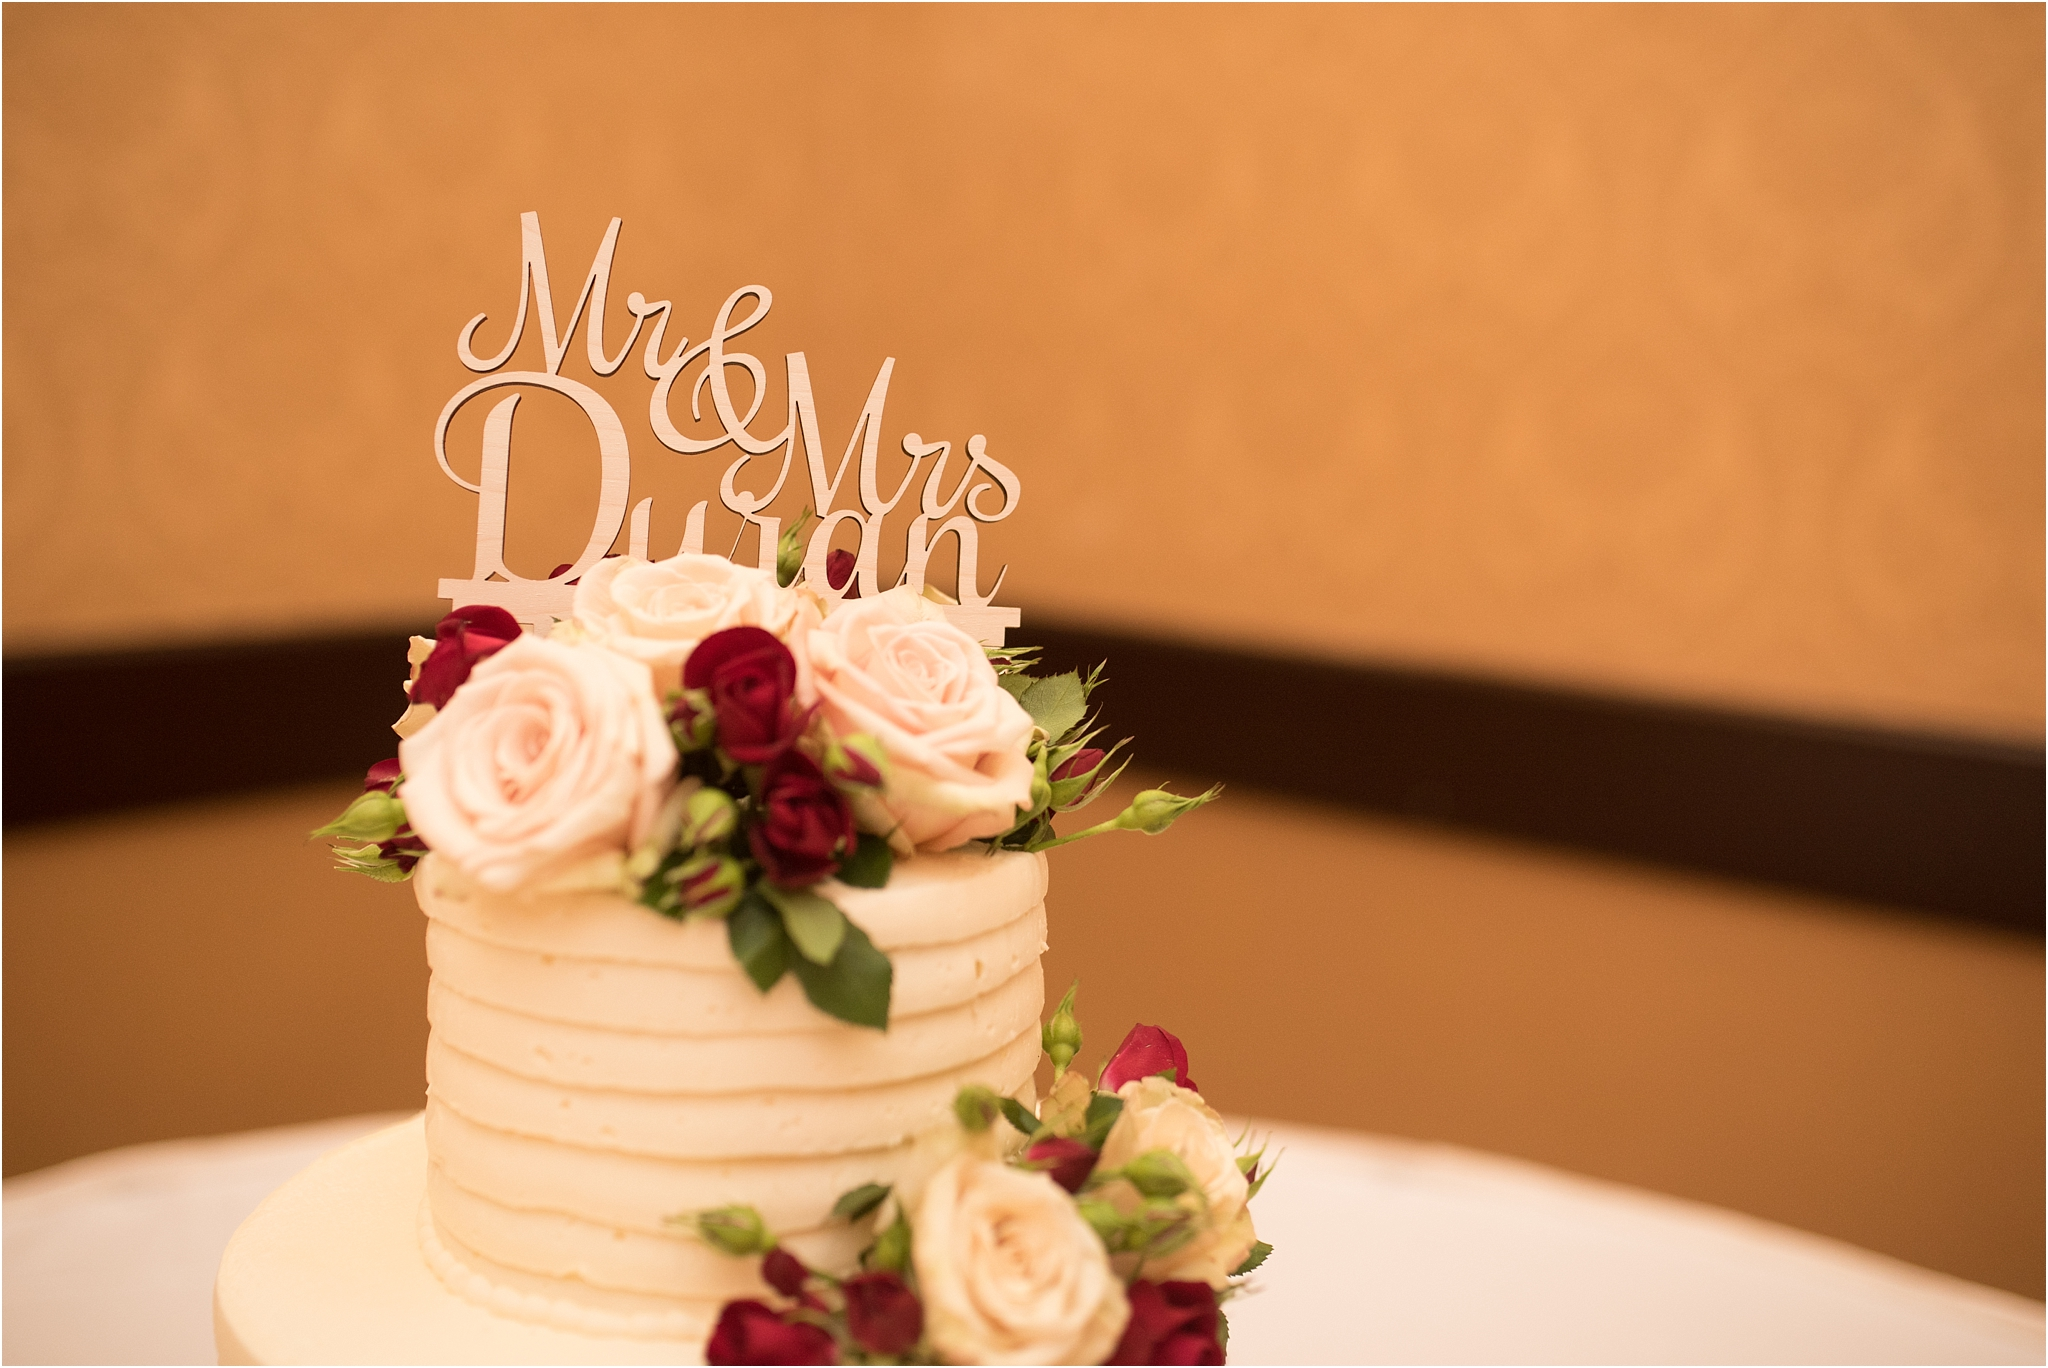 kayla kitts photography - albuquerque wedding photographer - hairpins and scissors - a cake odyssey - new mexico wedding photographer_0066.jpg